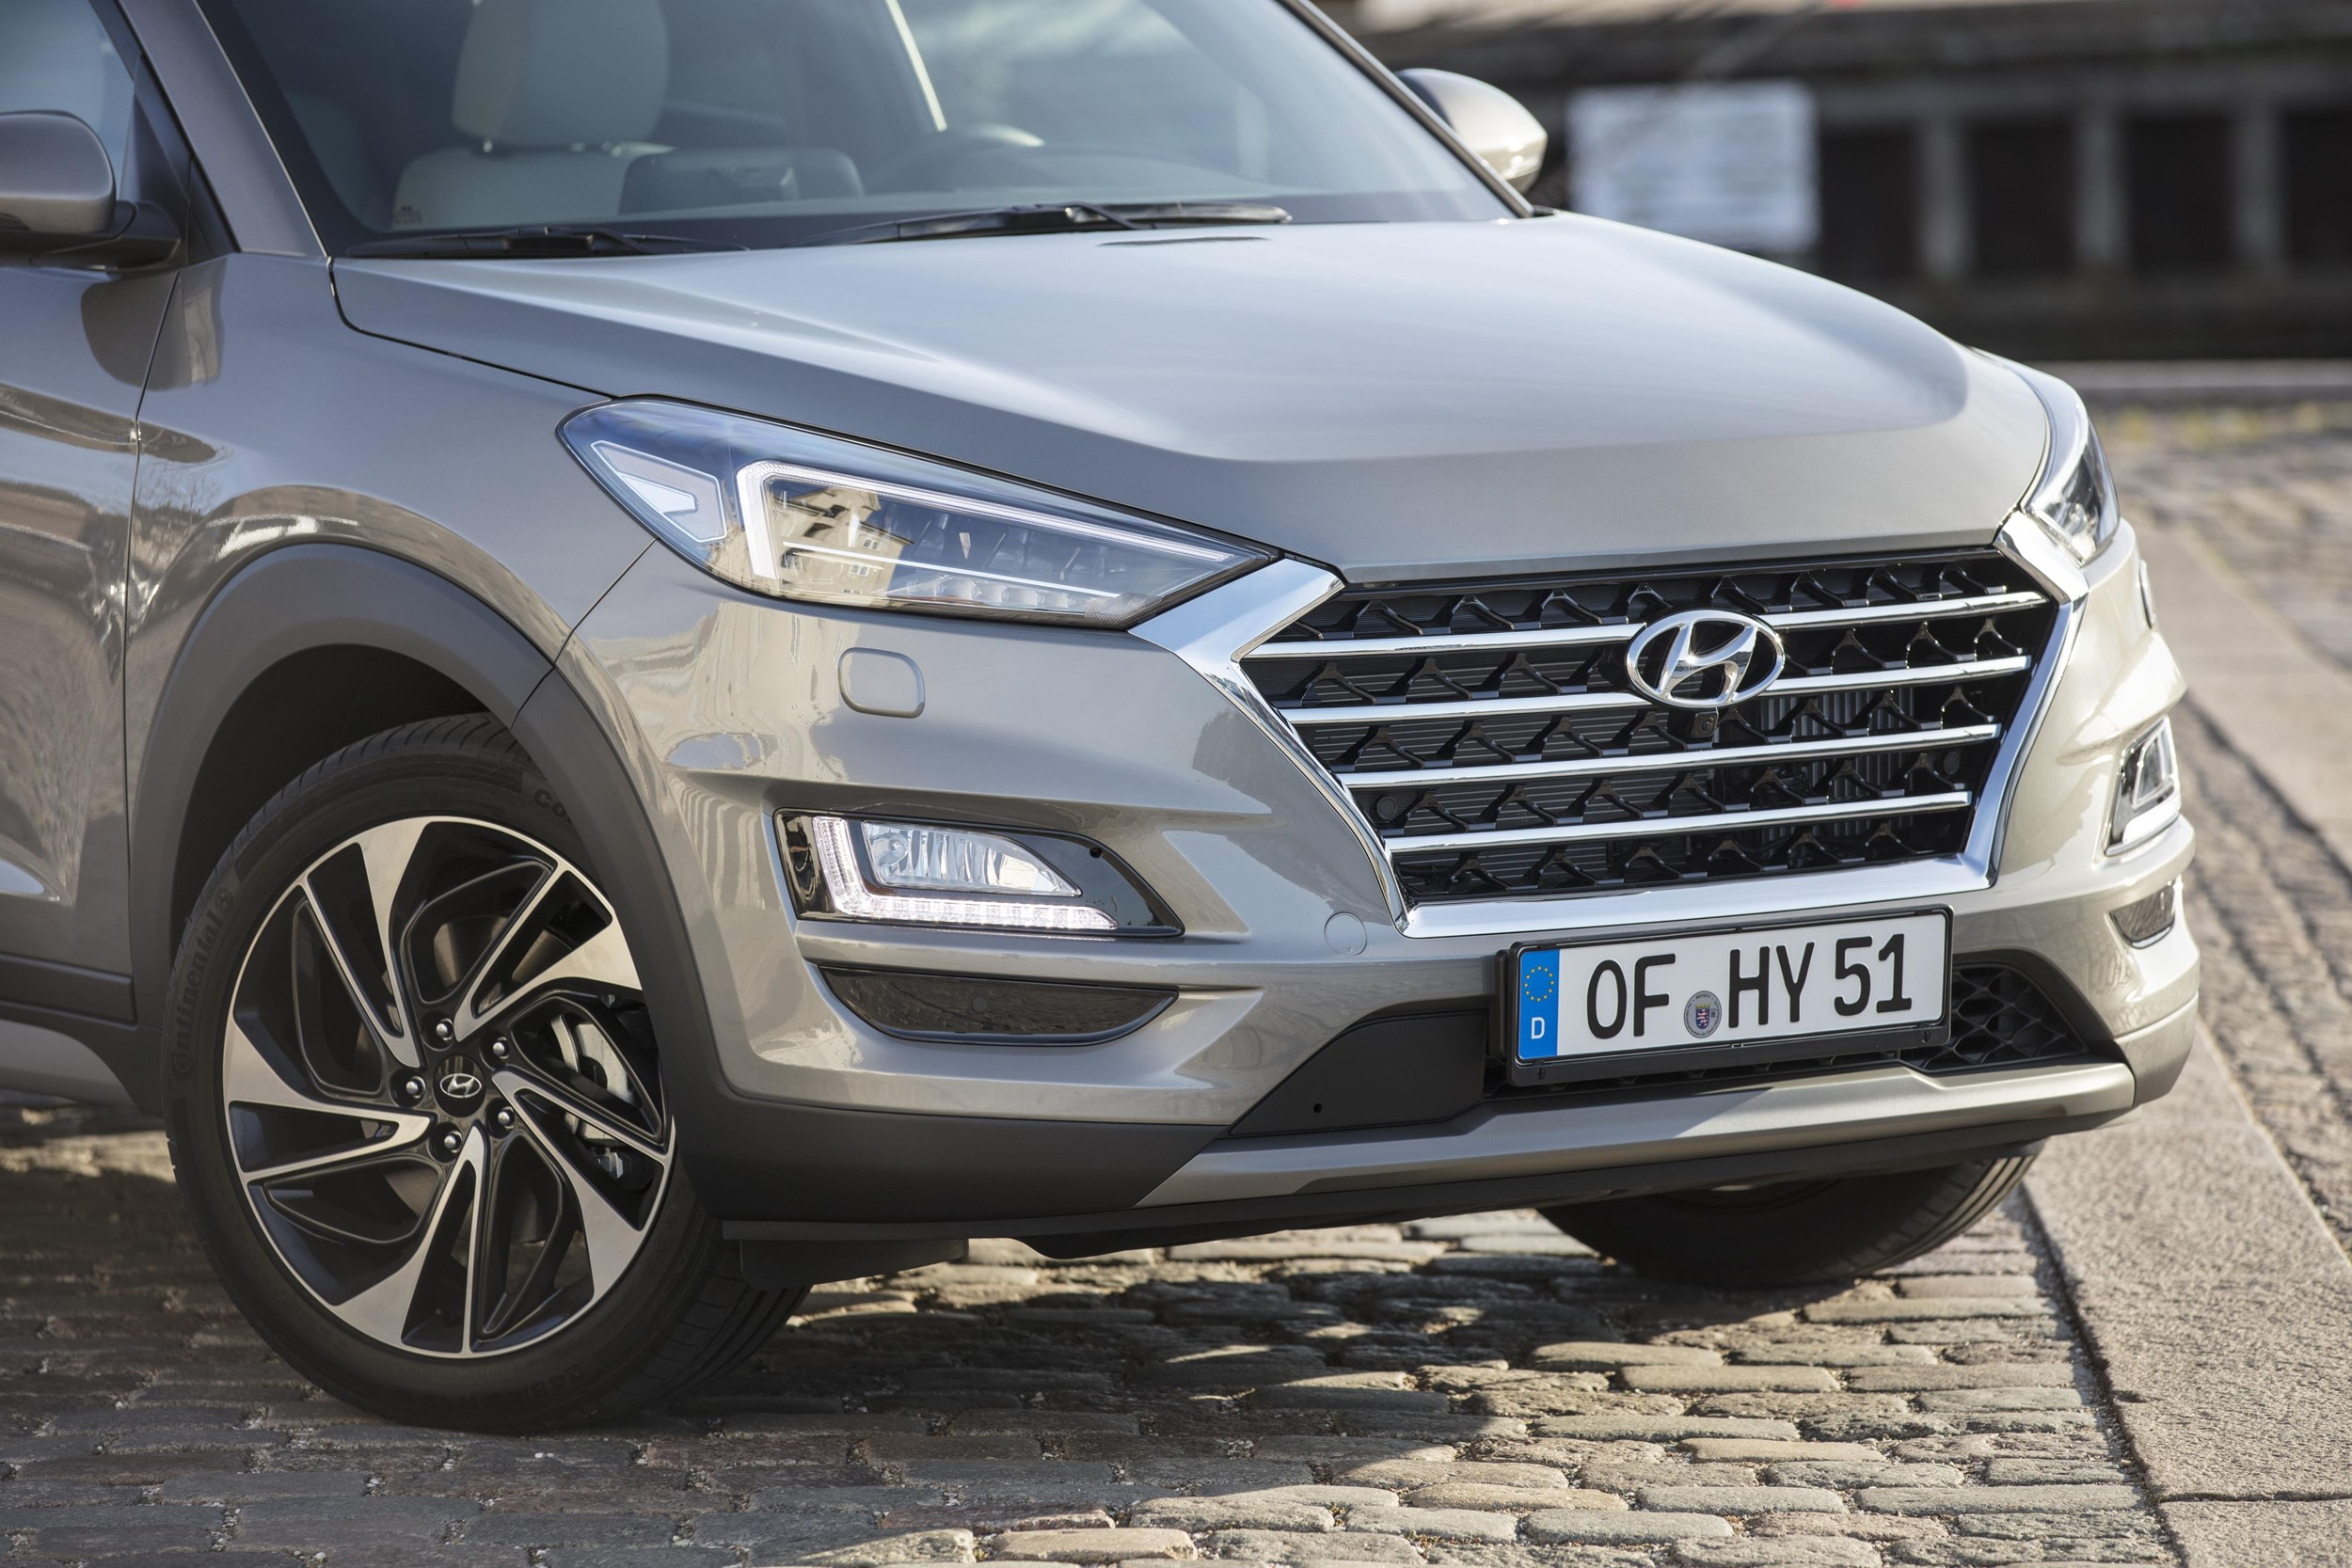 new hyundai tucson prices and specifications manufacturer news. Black Bedroom Furniture Sets. Home Design Ideas